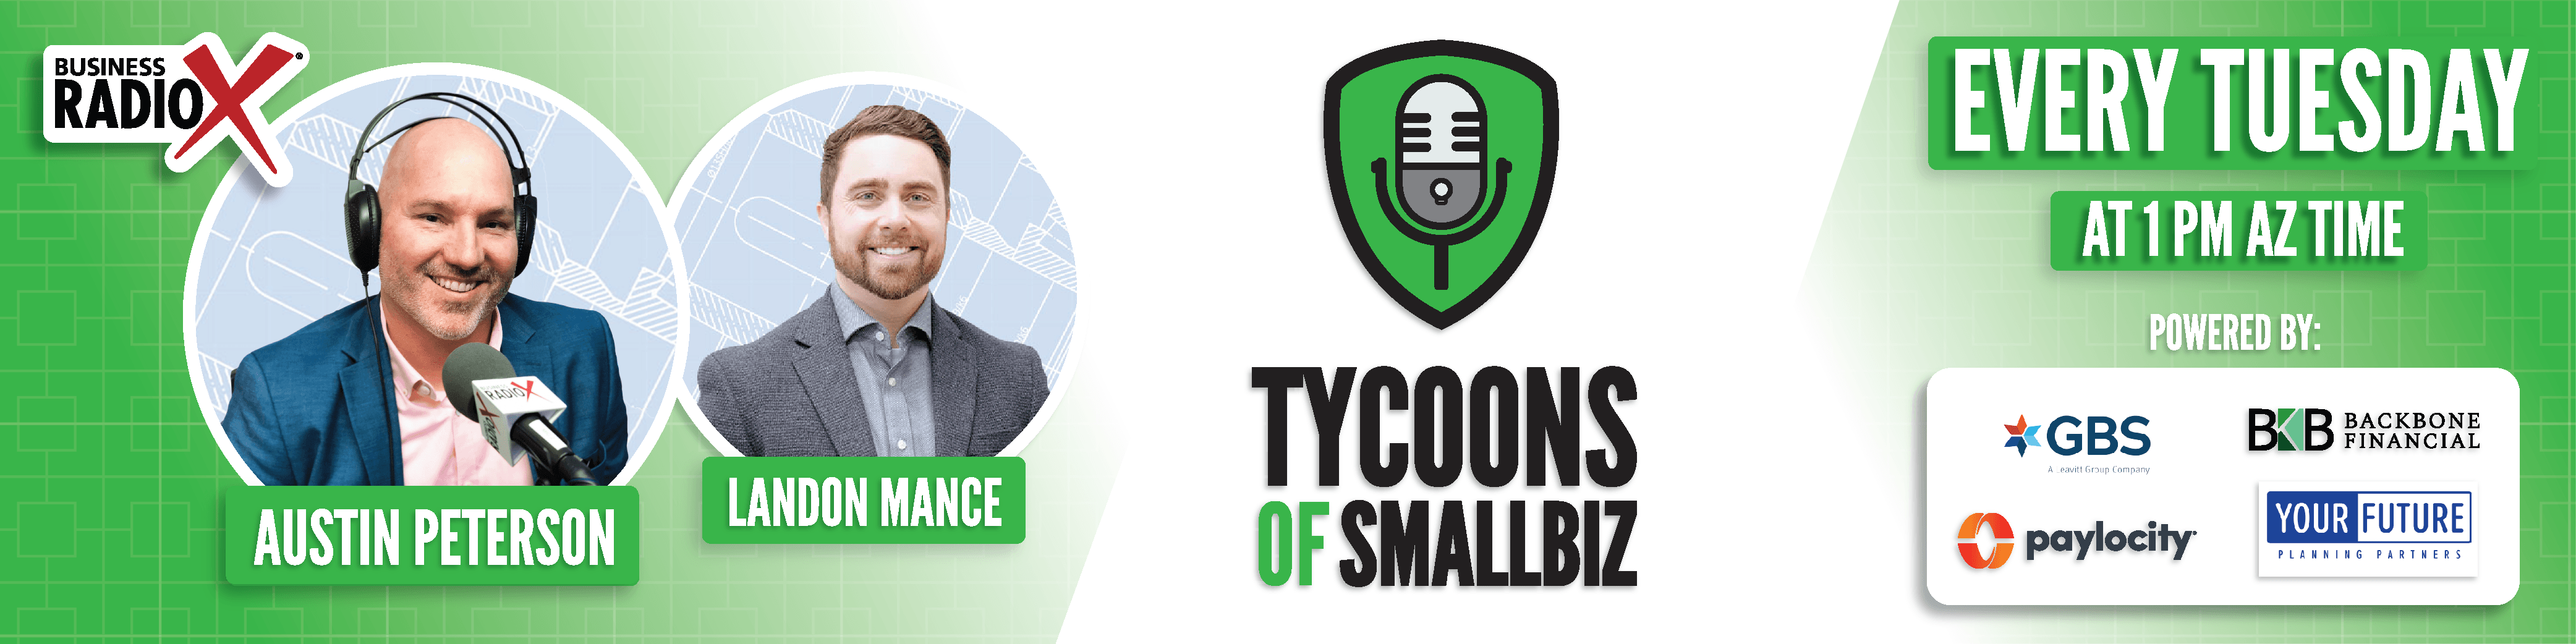 Tycoons-of-Small-Biz